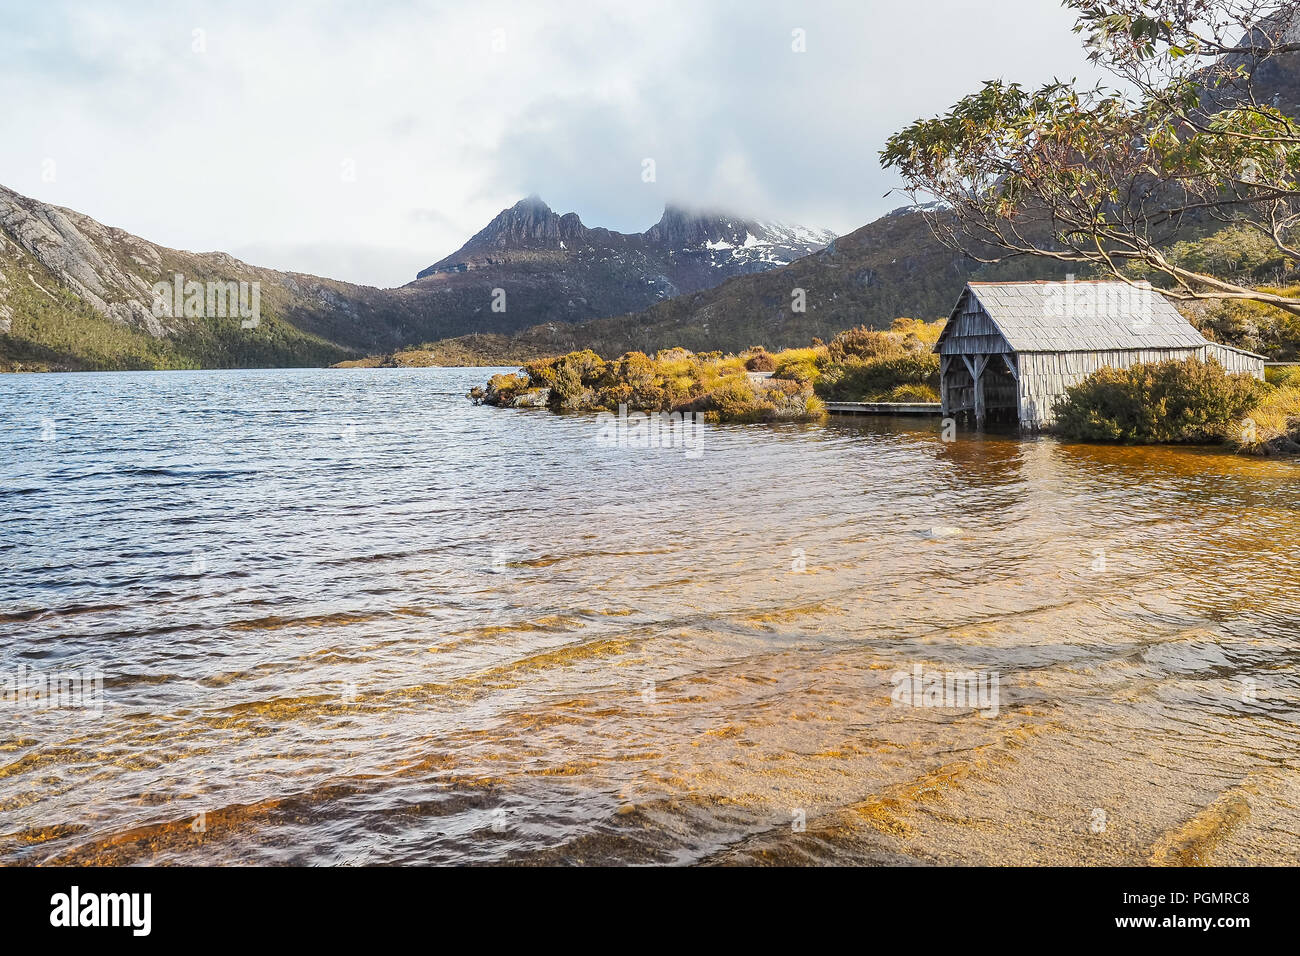 A boat shed in Dove Lake Circuit of Cradle Mountain National Park. (Tasmania, Australia) - Stock Image